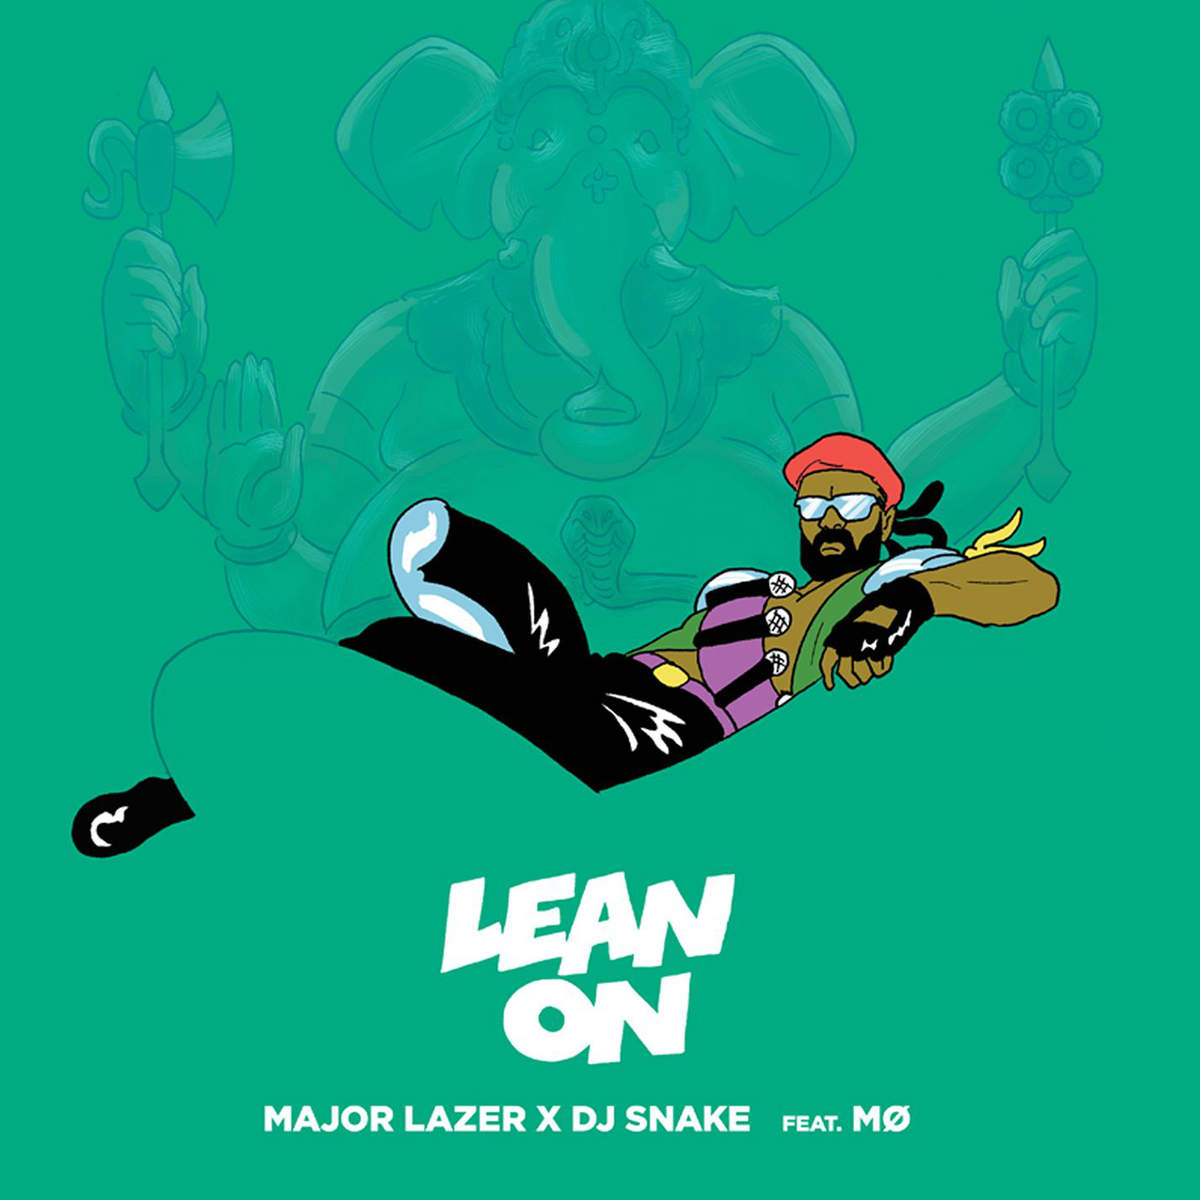 Major Lazer & DJ Snake Lean On (feat. MØ)